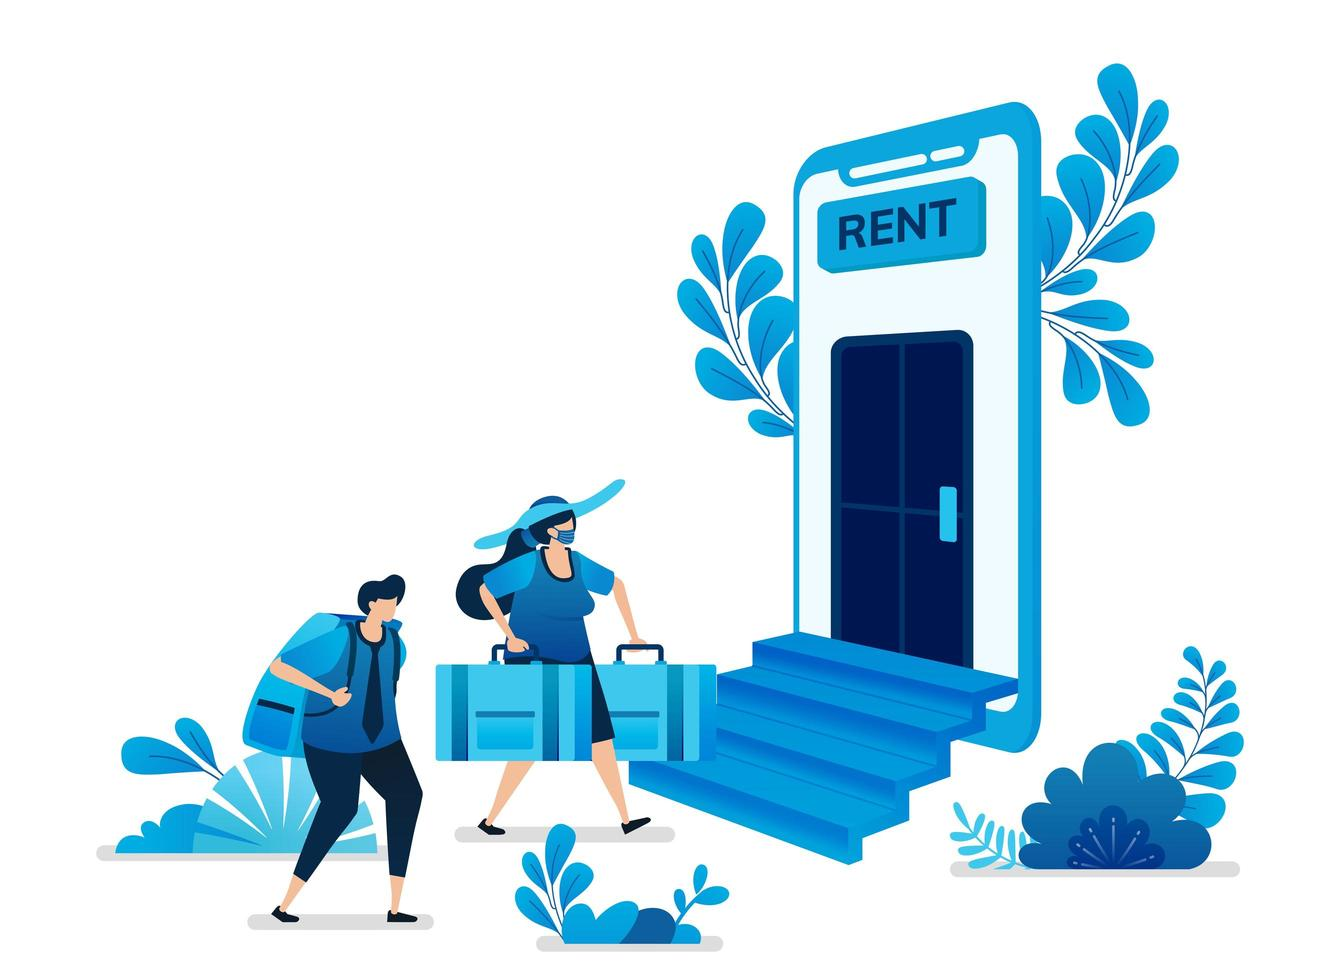 Vector illustration of home and apartment rental mobile apps. Cheap trips and backpacking vacation traveling. Can be used for landing page, website, web, mobile apps, flyer banner, template, poster